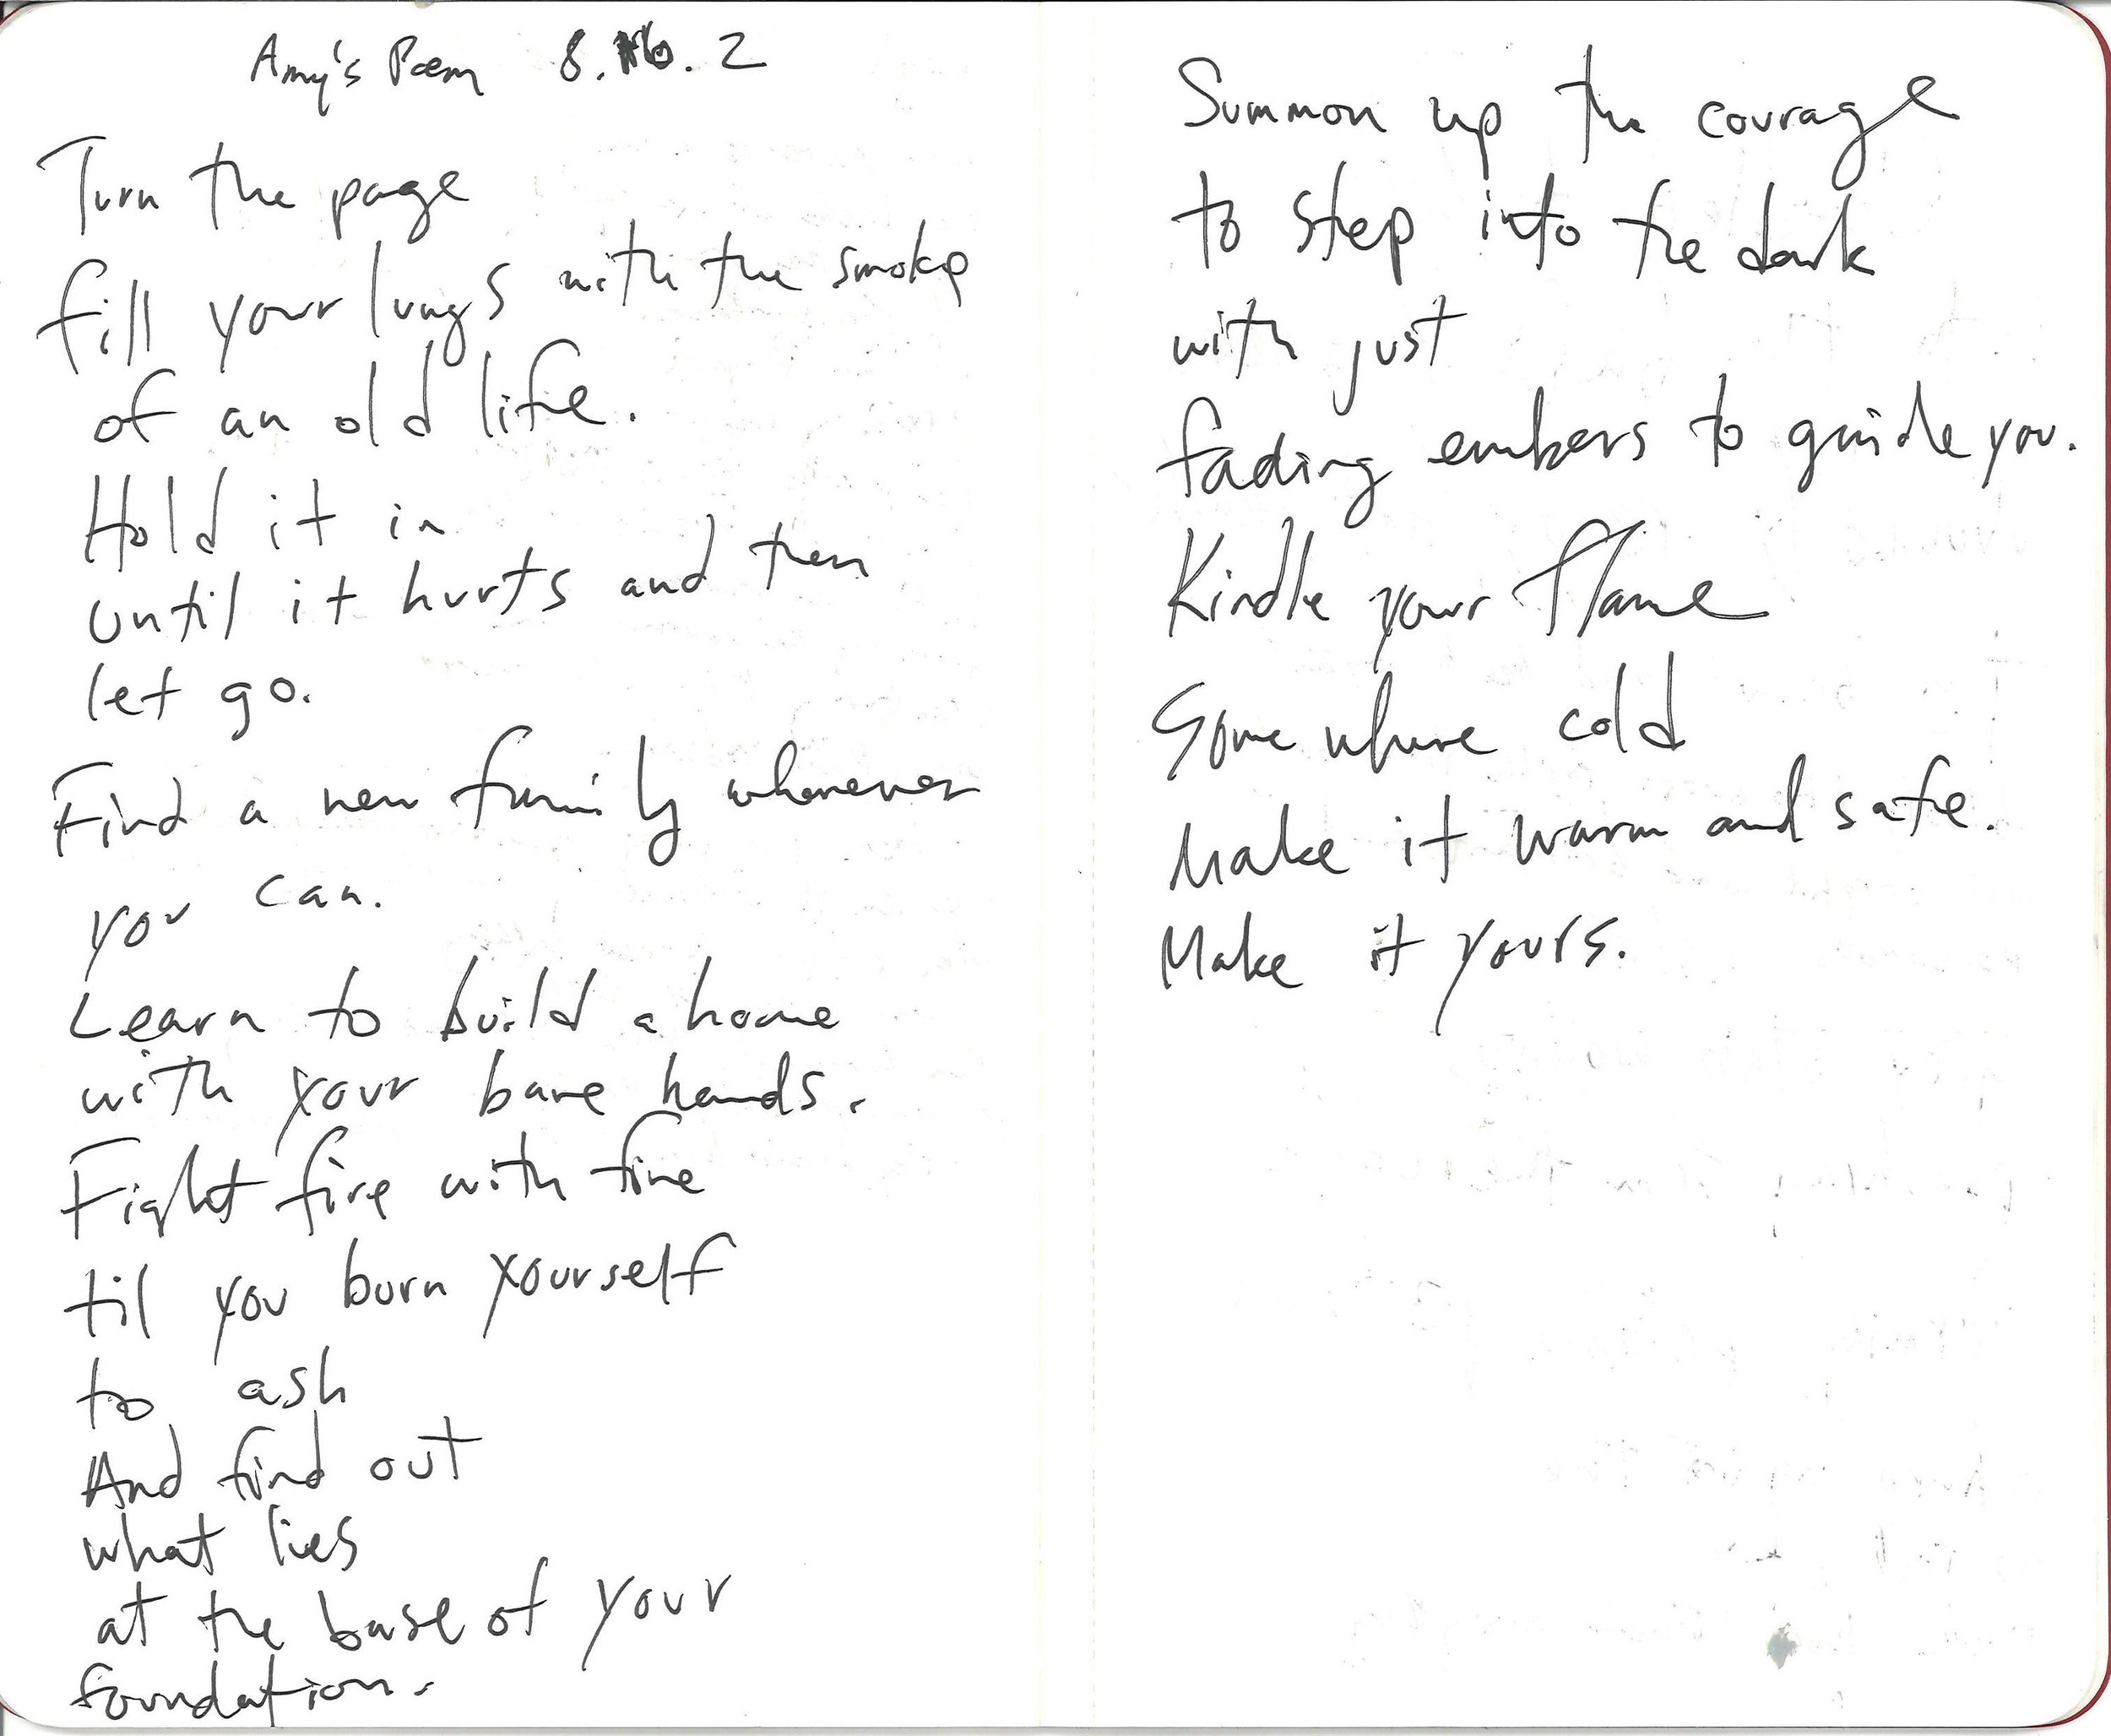 Dictated by Amy, transcribed by Reg